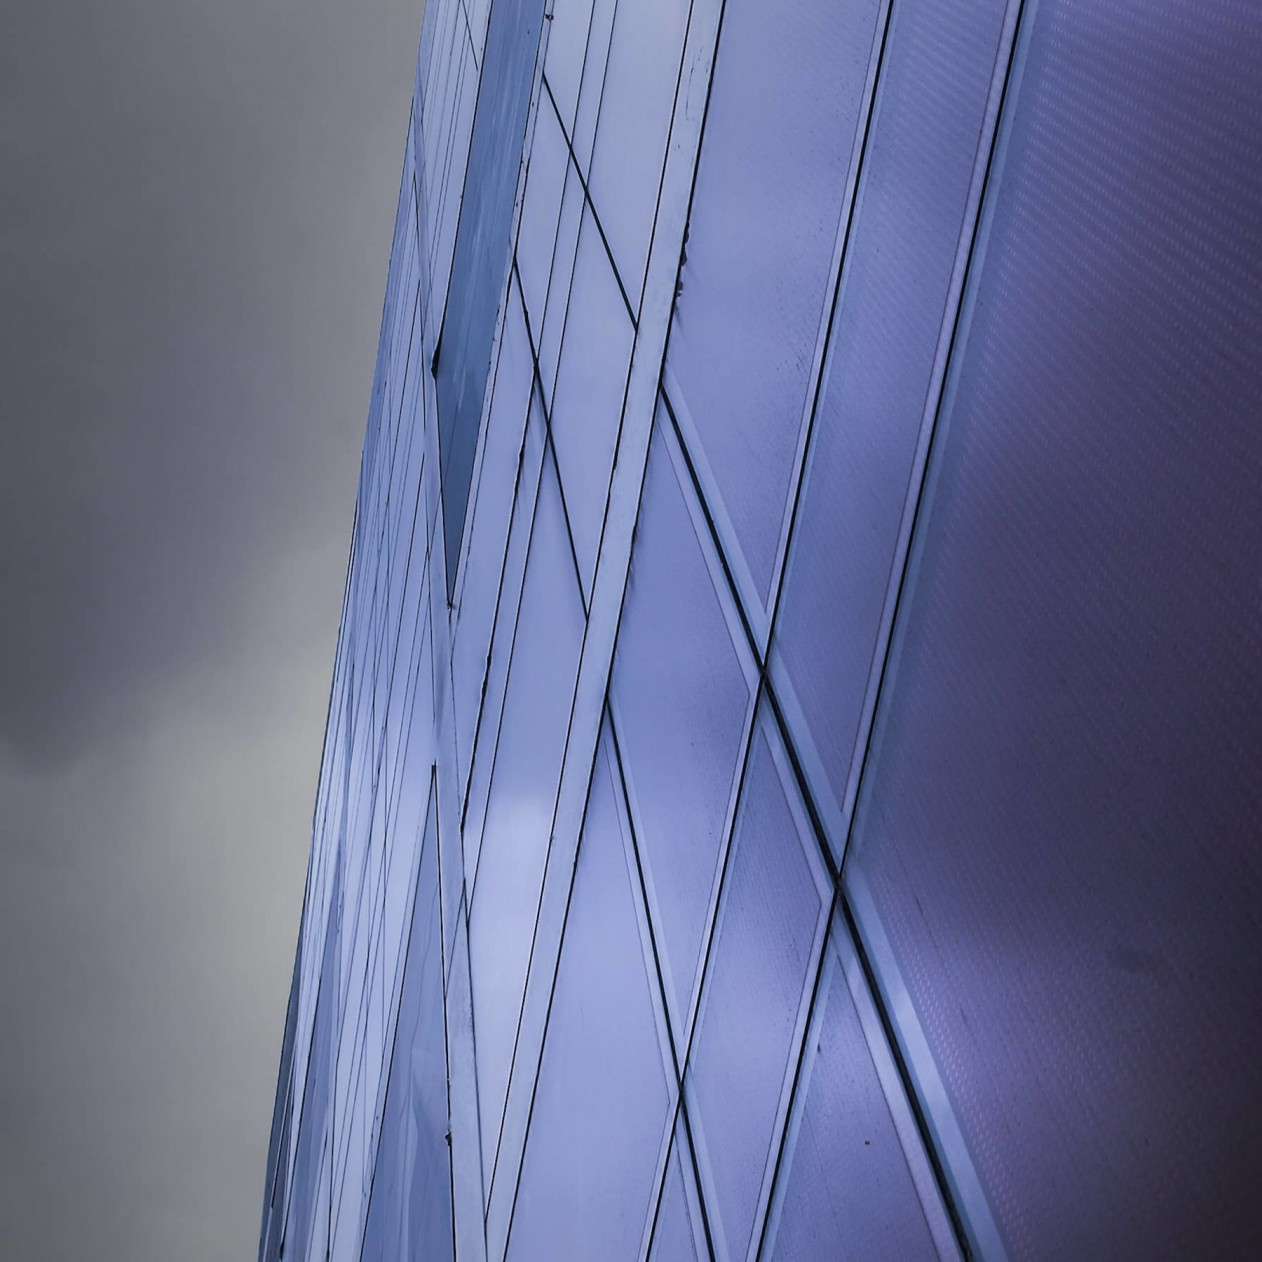 Modern Office Building Facade Wallpaper for Apple iPad mini